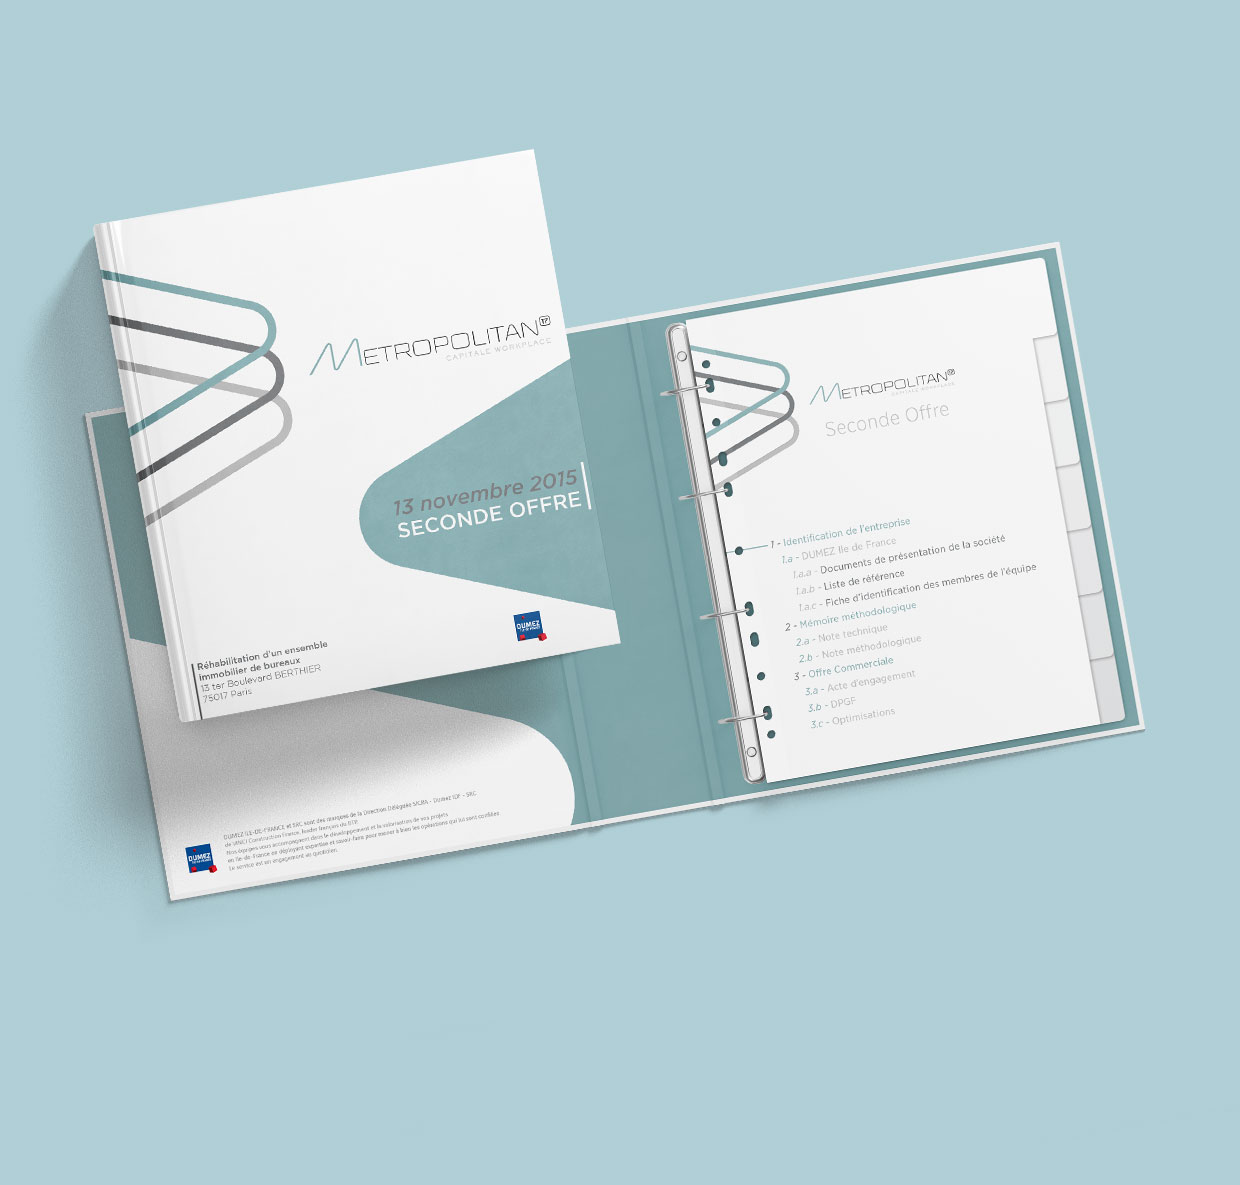 Branding d'archi by DamienC.fr